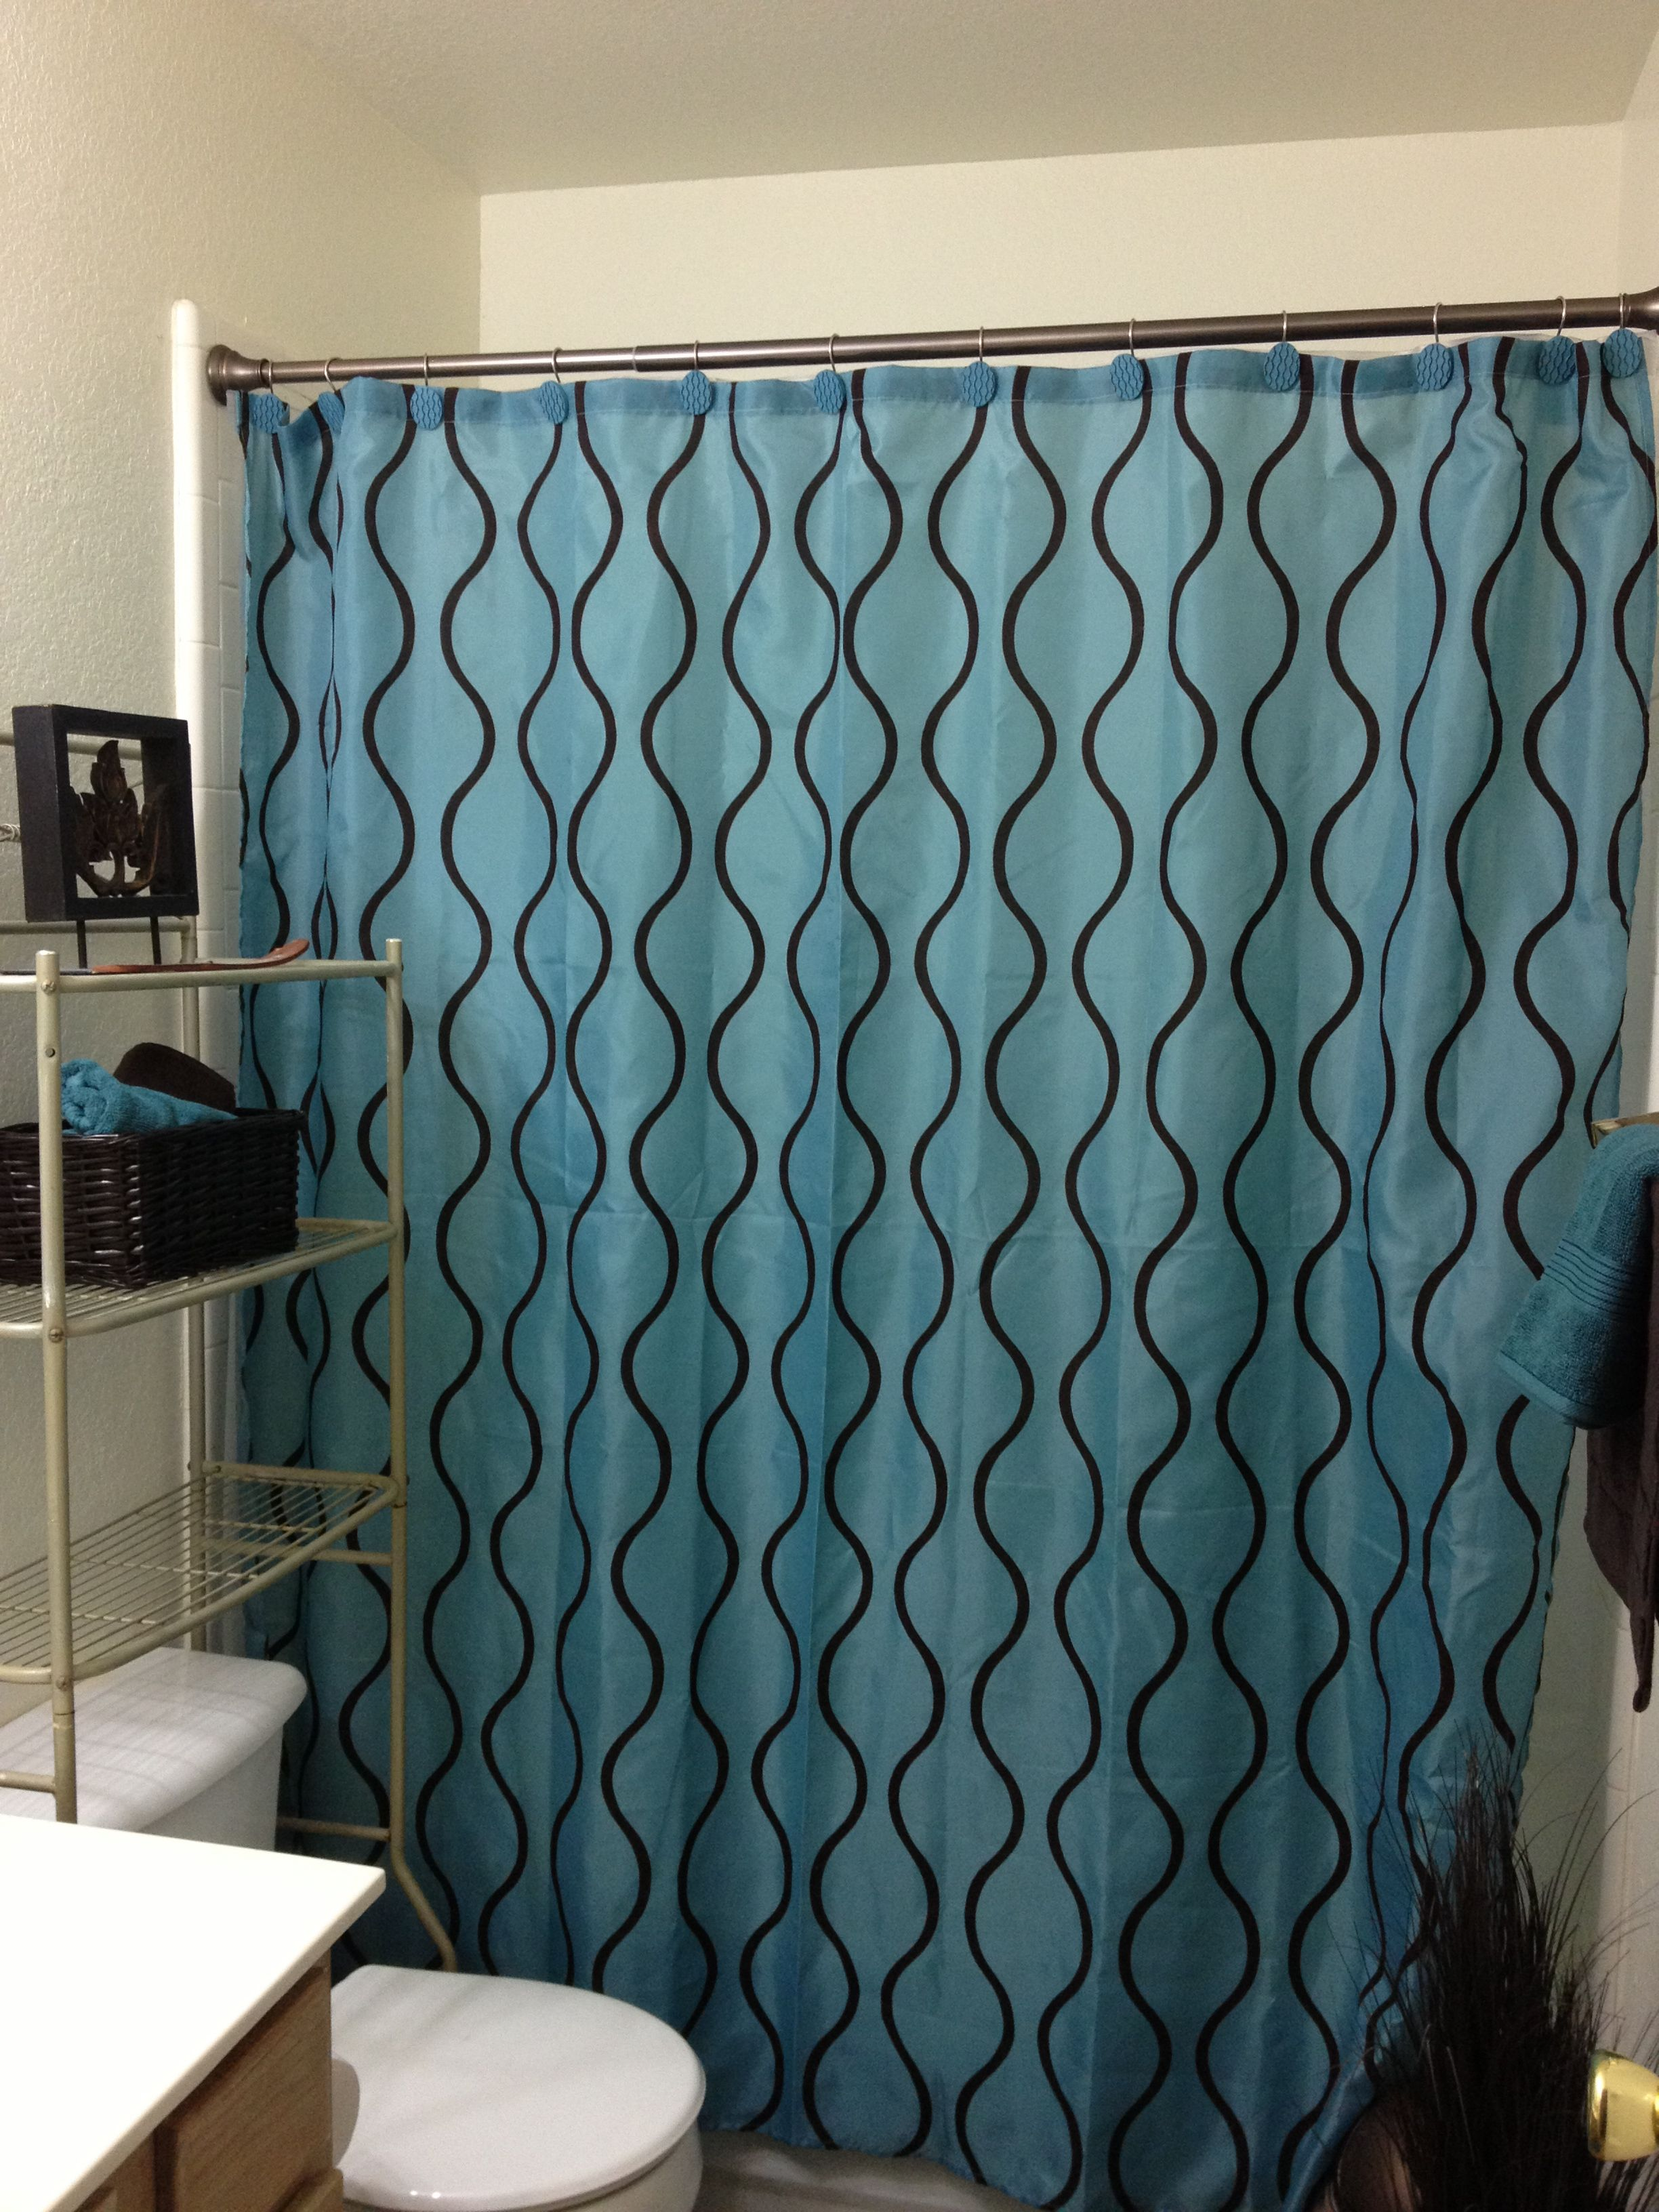 Teal Brown Shower Curtain Teal Bathroom Decor Brown Bathroom Decor Brown Bathroom